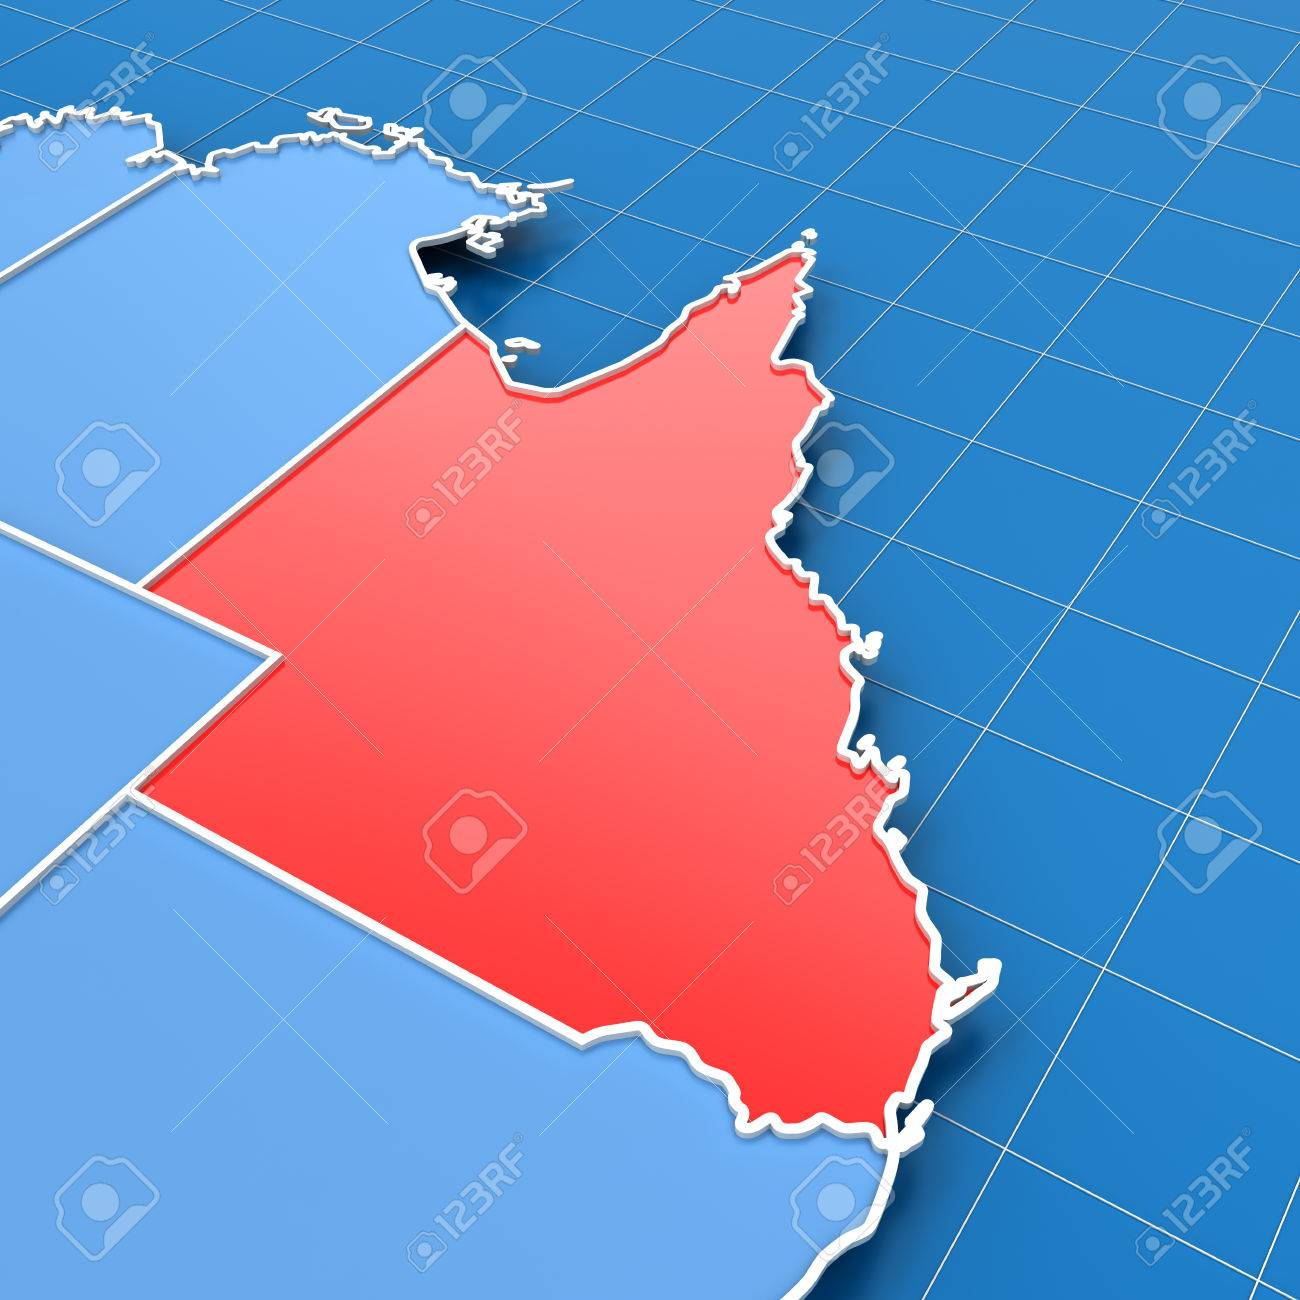 D Render Of Australia Map With Queensland Highlighted Stock Photo - Map australia queensland